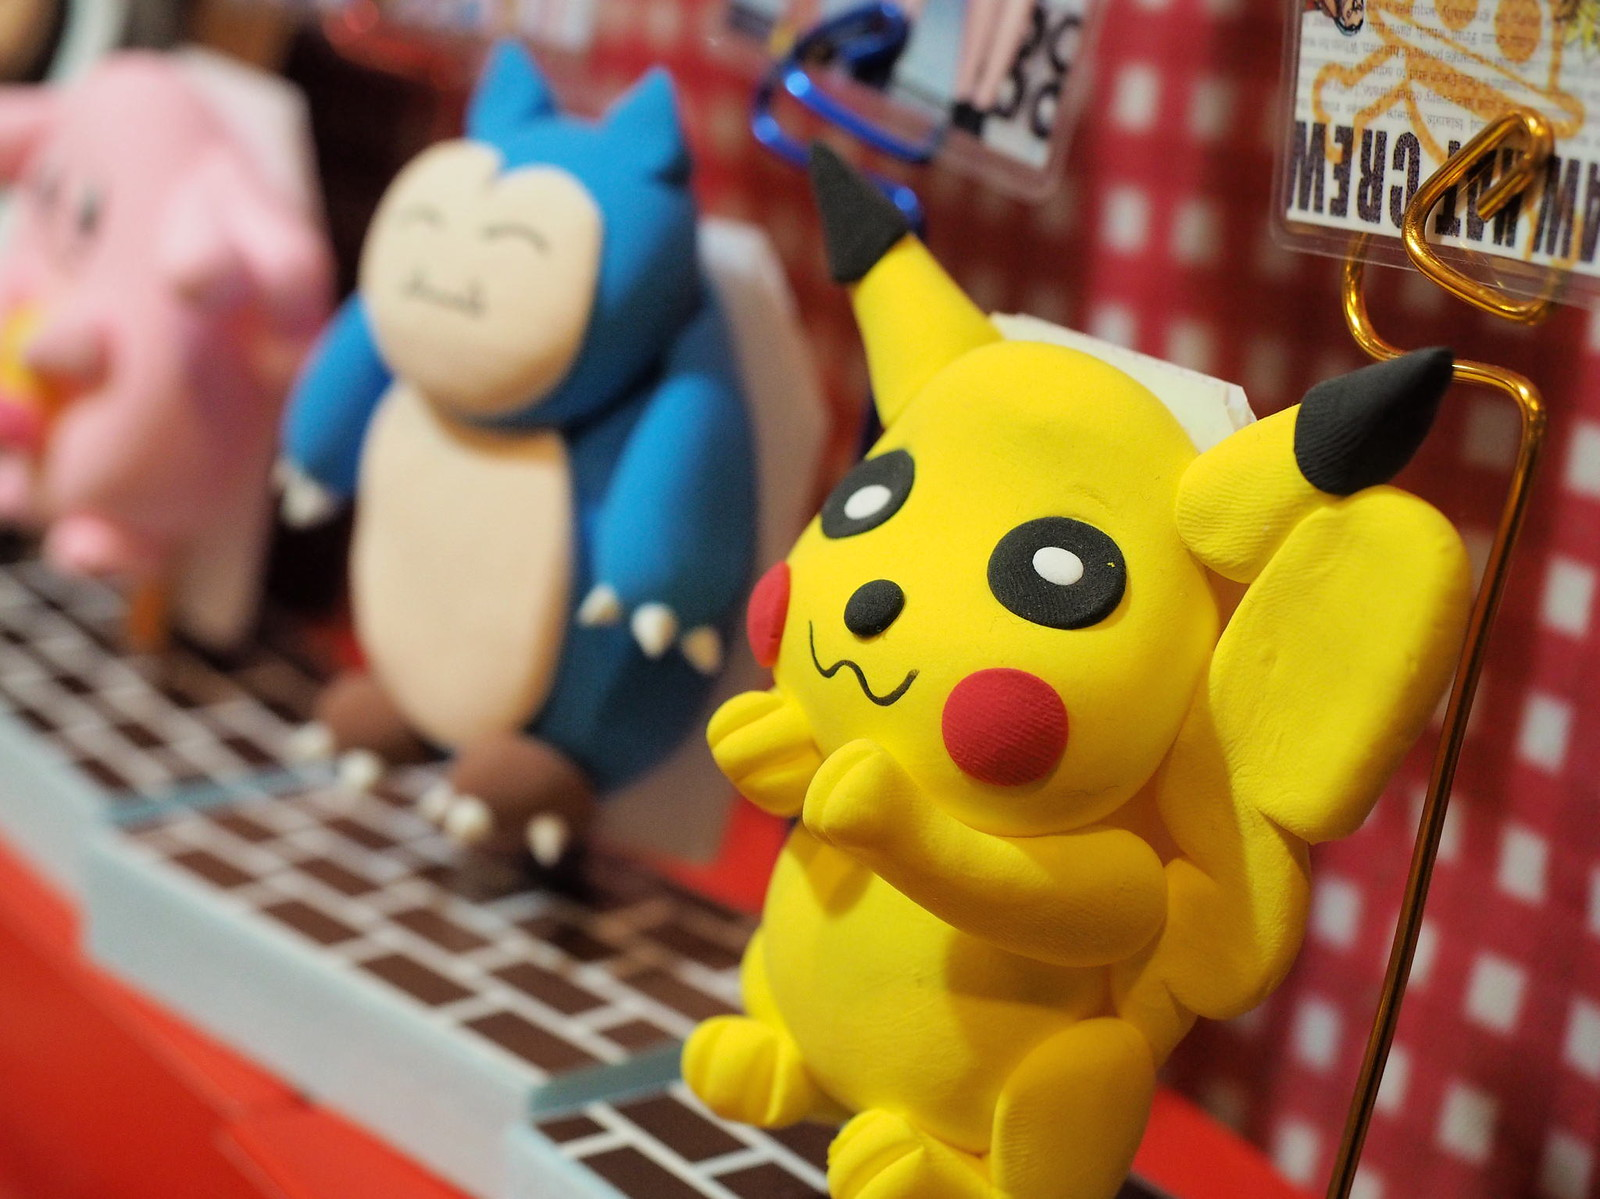 Pikachu and other Pokémon made from clay for sale.